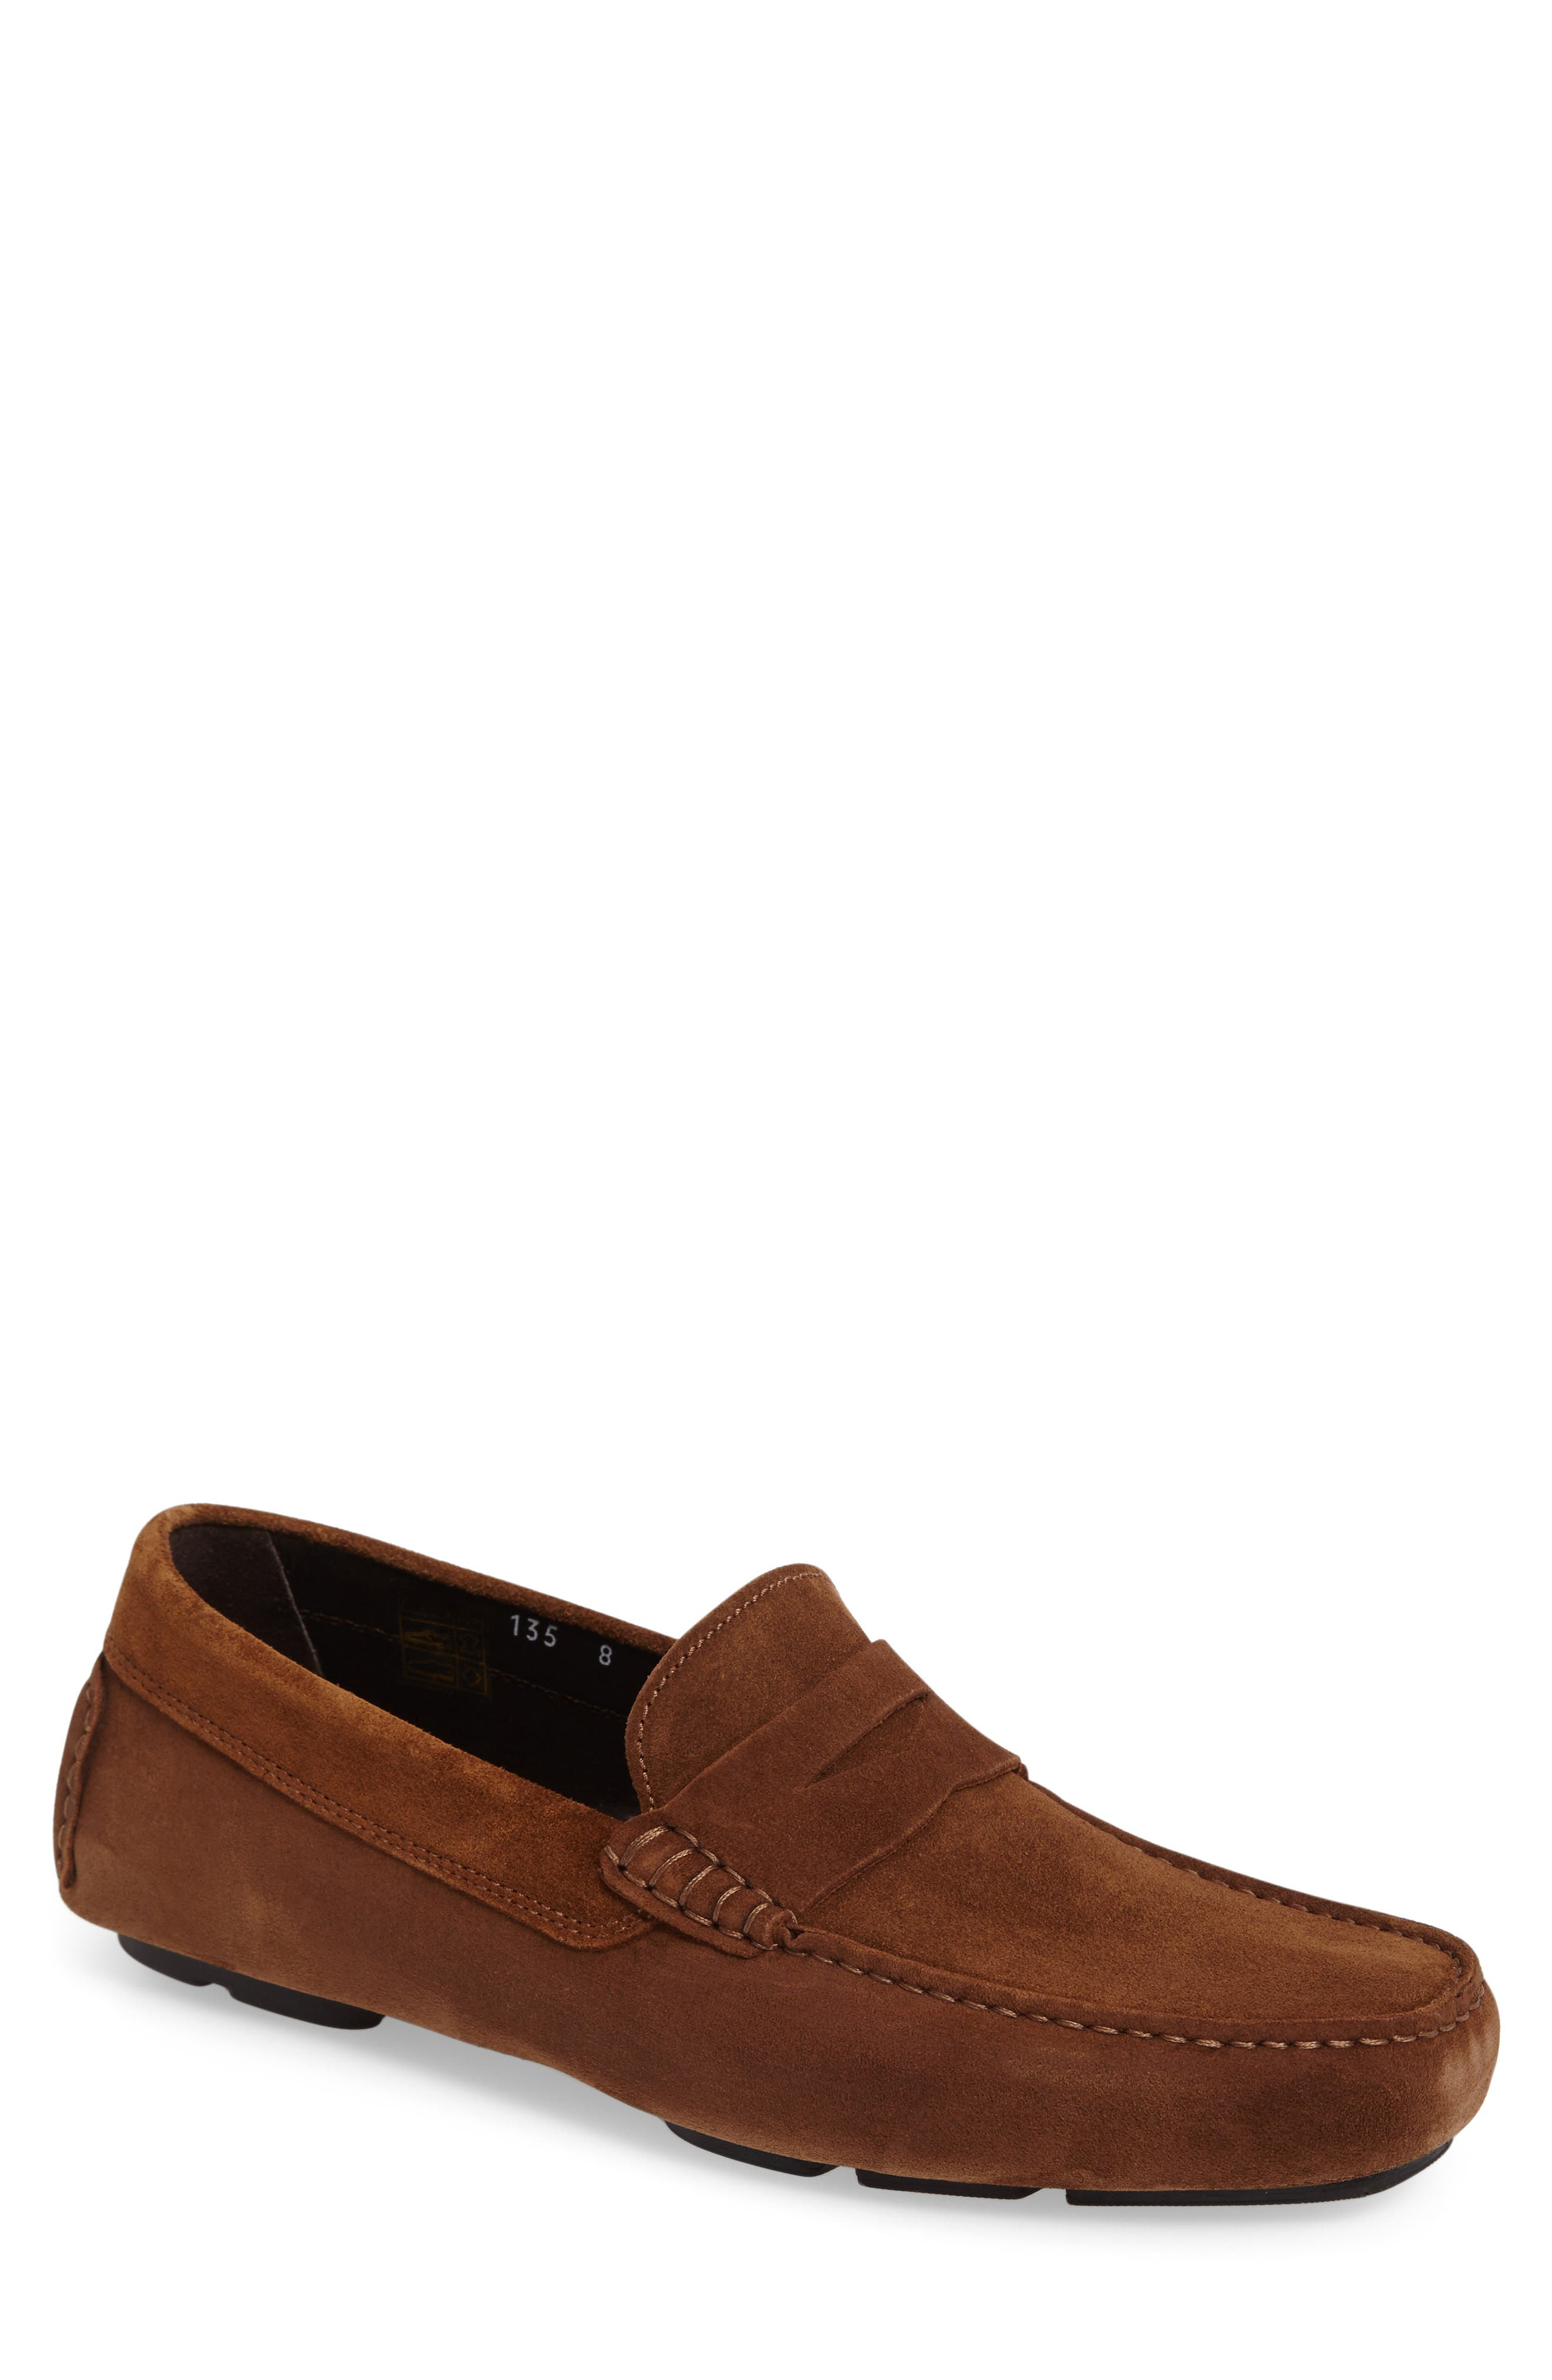 Mitchum Driving Shoe,                         Main,                         color, BROWN/ BROWN SUEDE